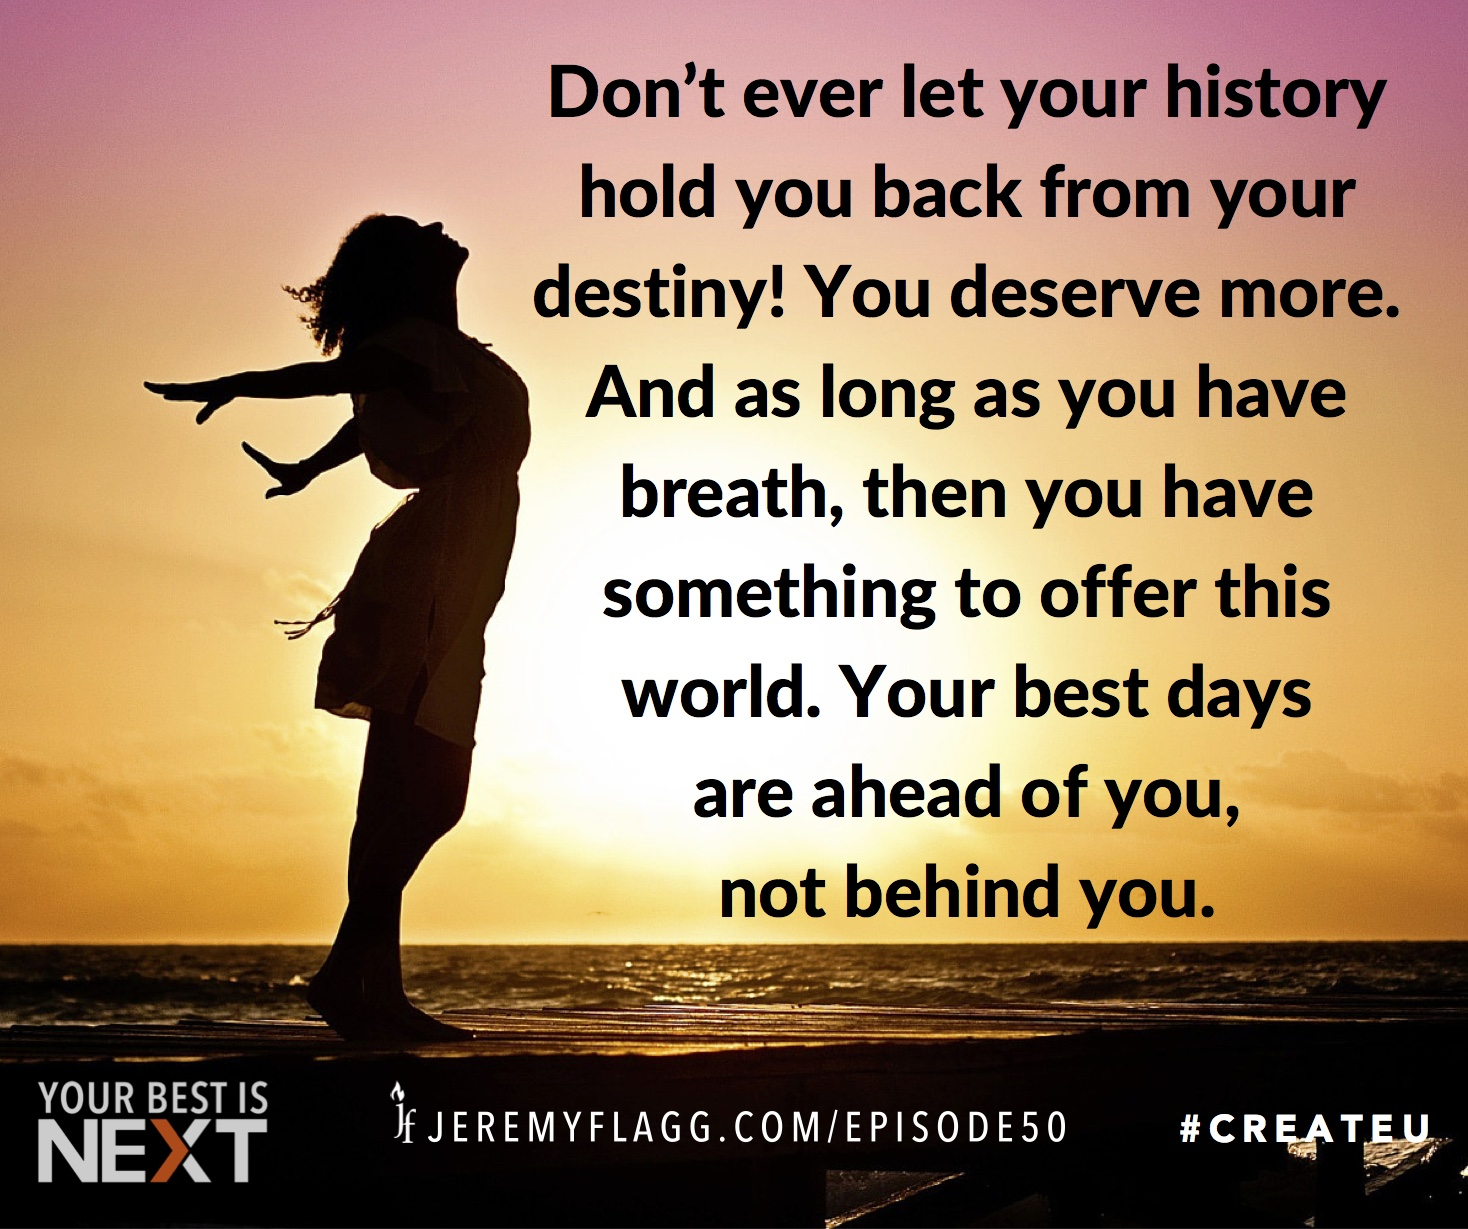 History-destiny-your-best-days-are-ahead-Jeremy-Flagg-quote-FB